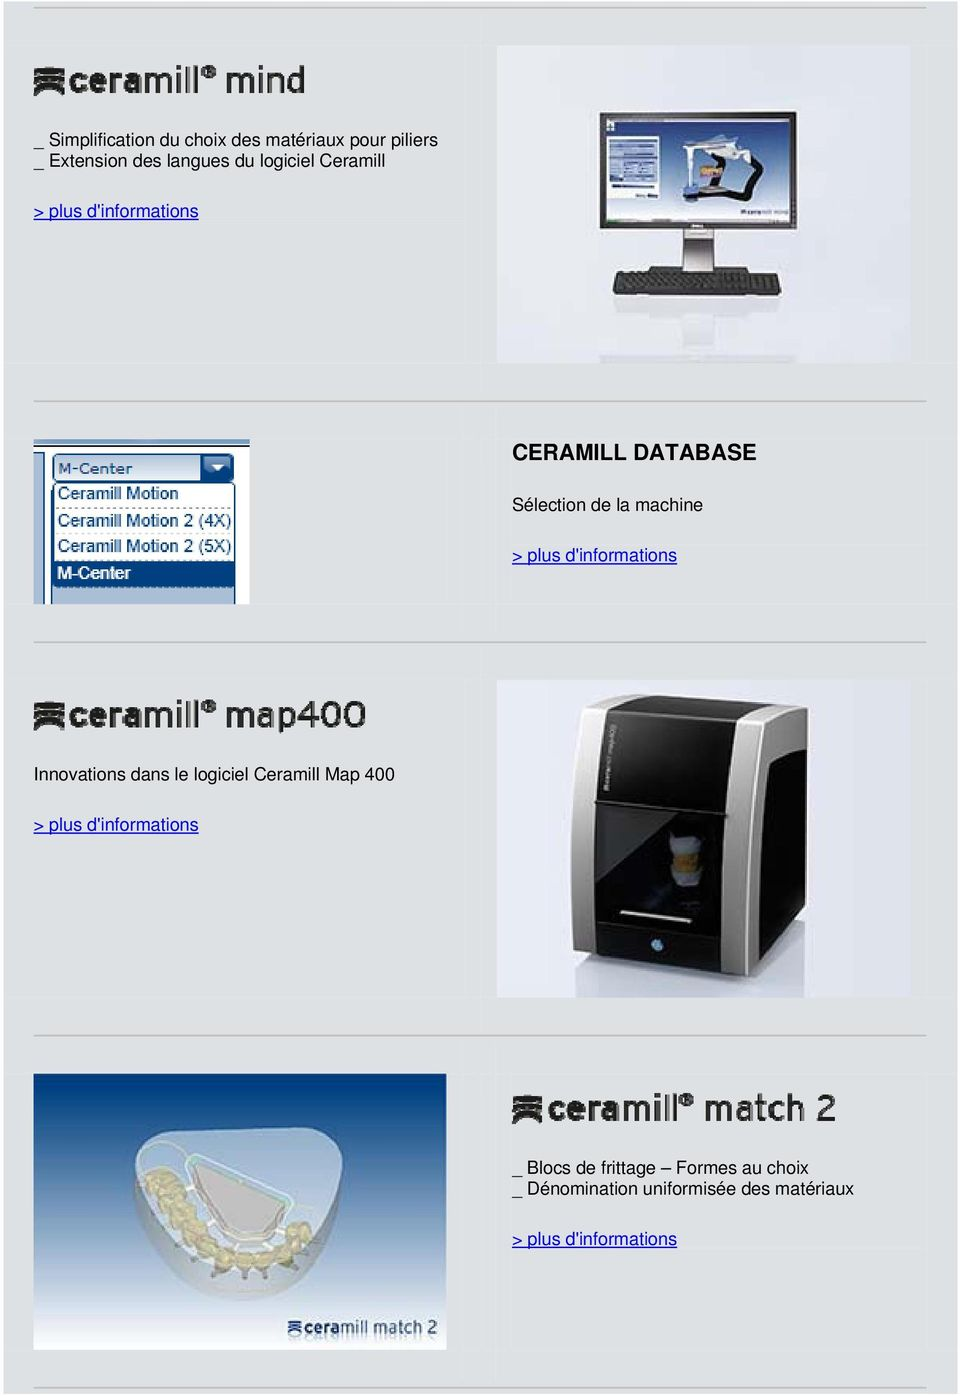 la machine Innovations dans le logiciel Ceramill Map 400 _ Blocs